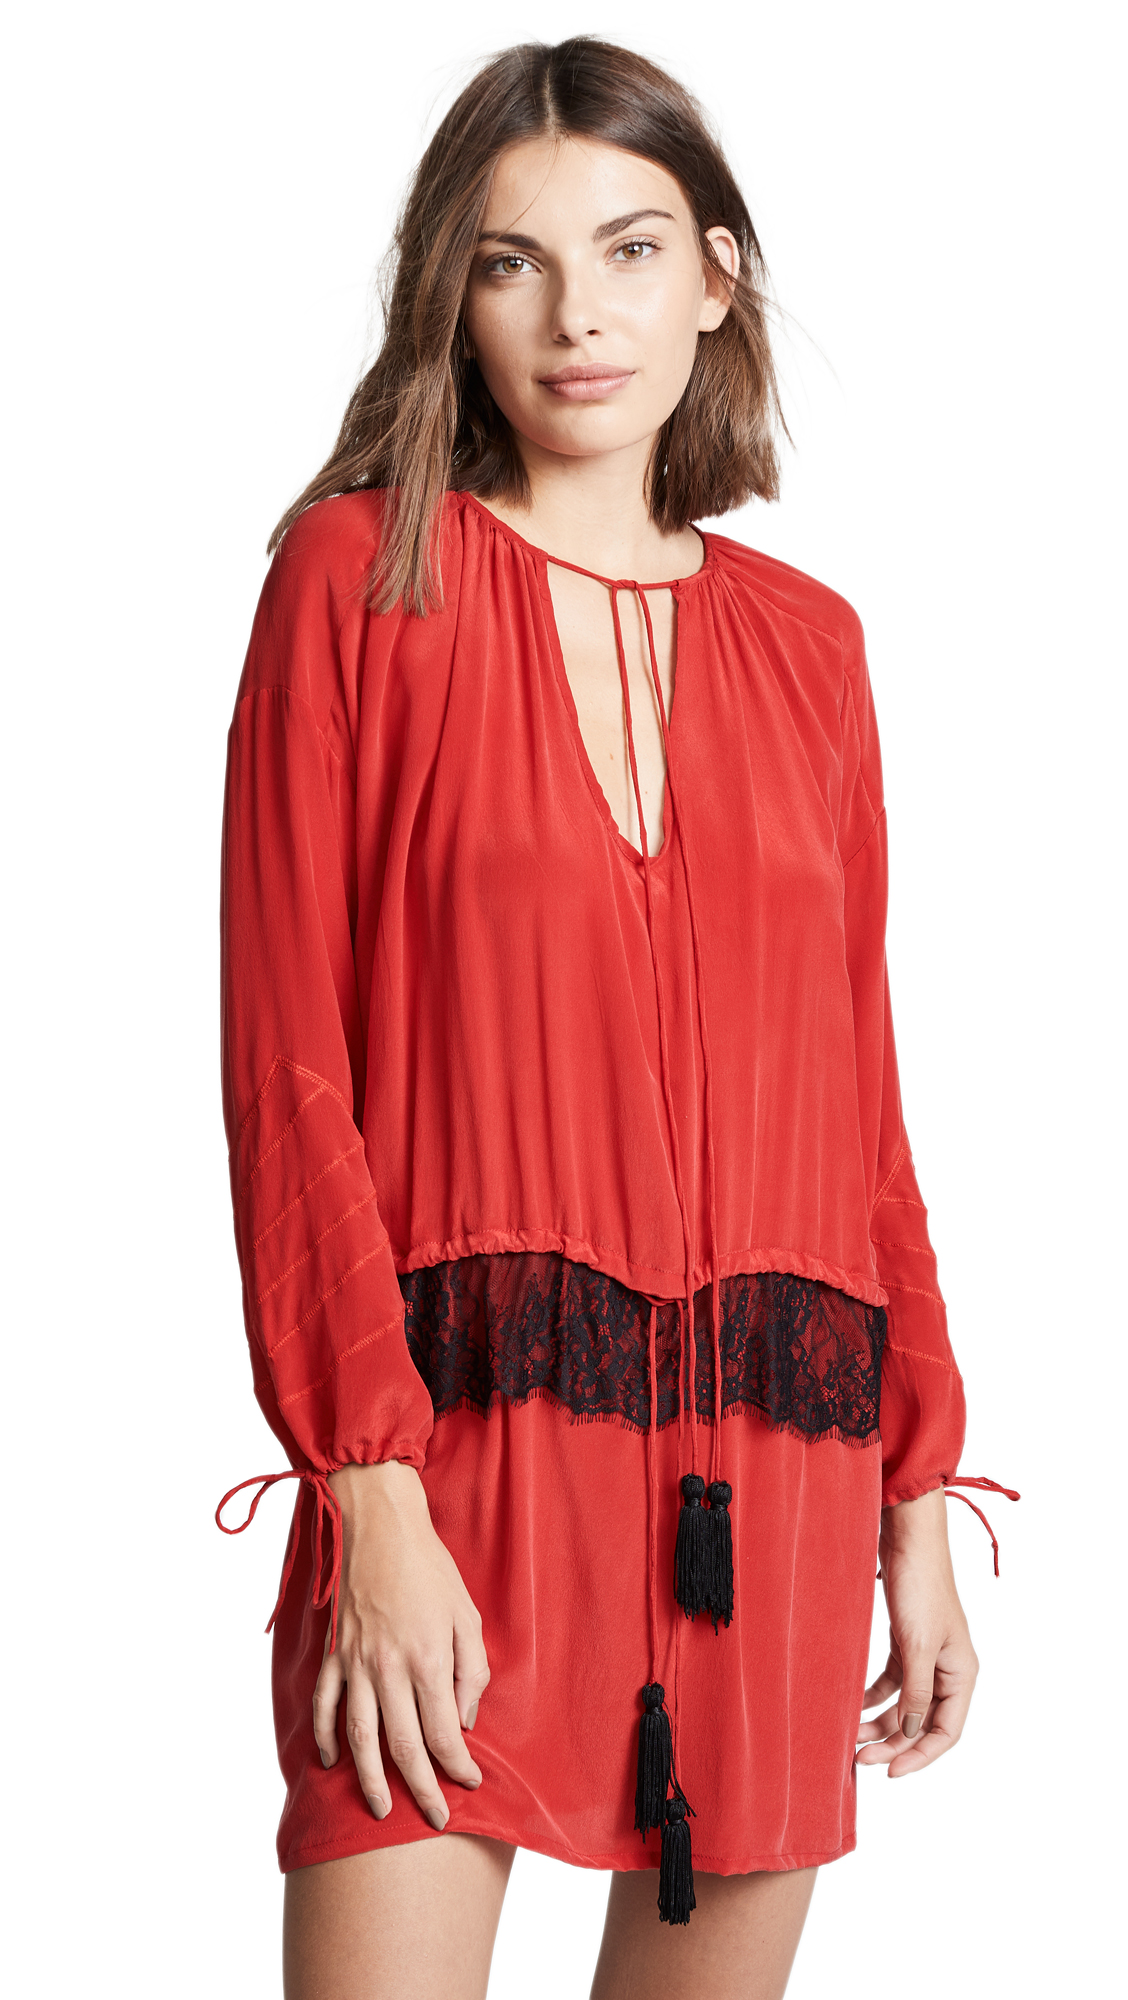 LOYD/FORD Silk Georgette Dress in Solid Red